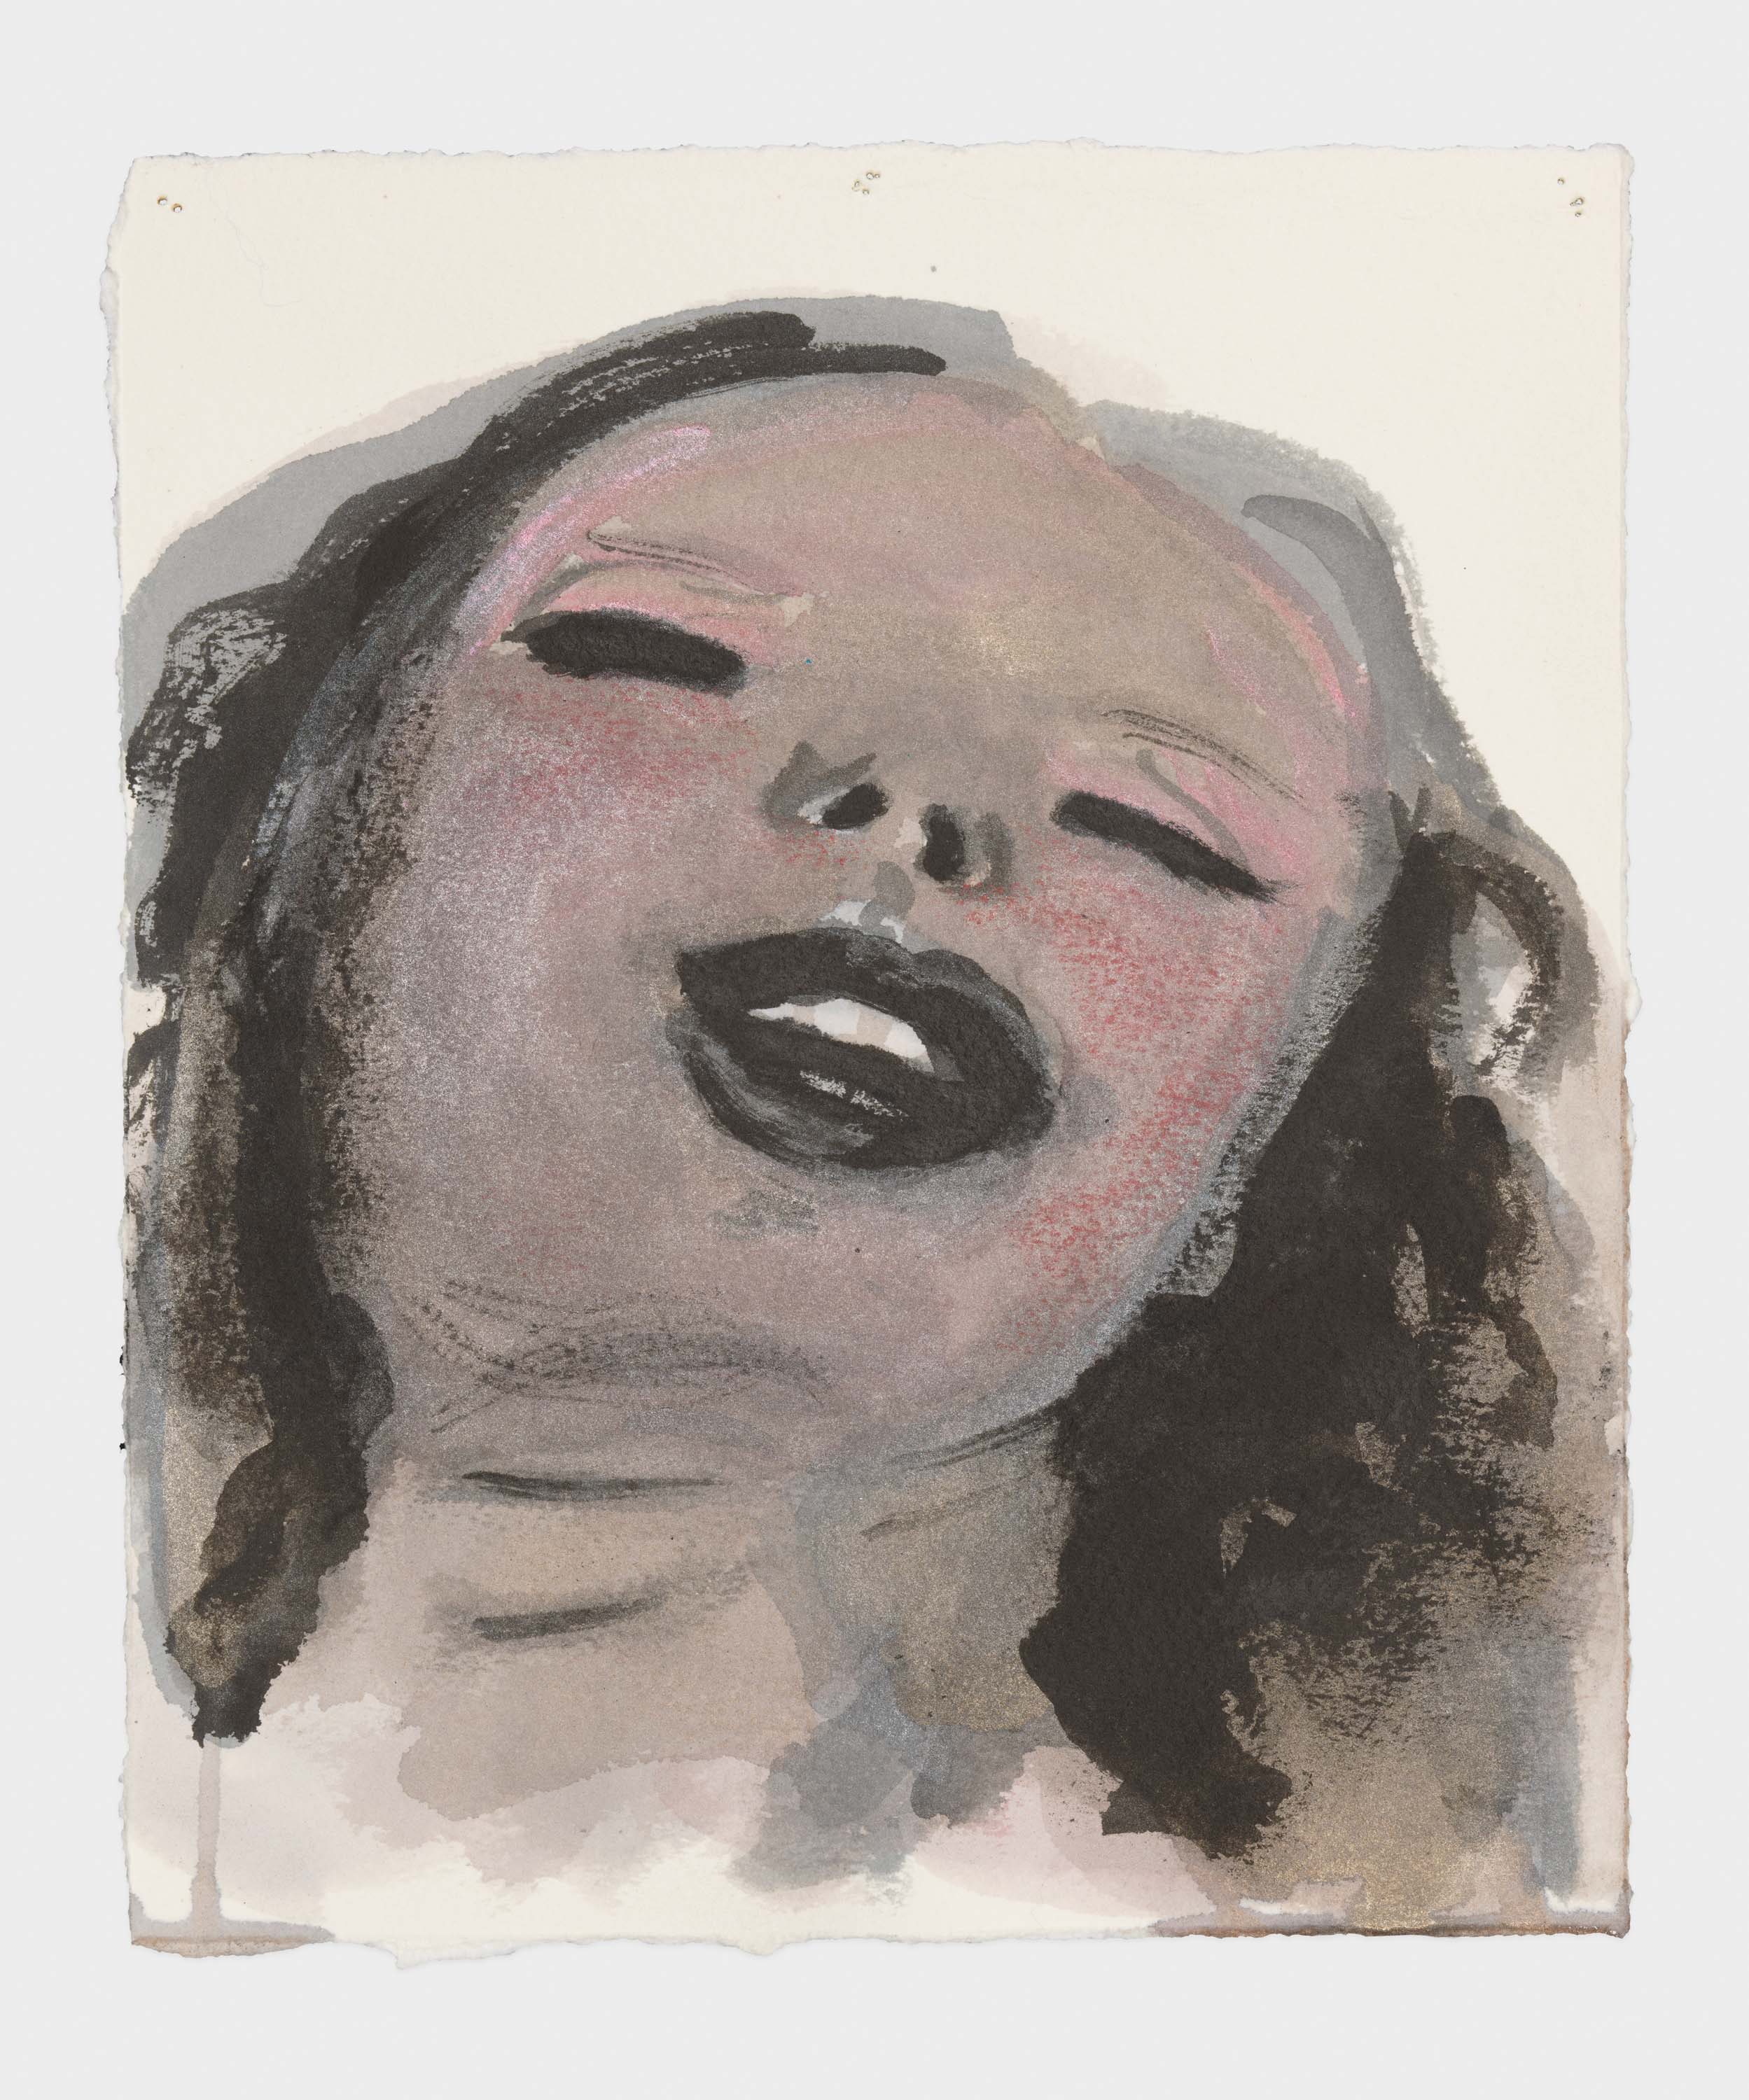 """Marlene Dumas, """"Venus praises the pleasures of love"""", 2015-2016 Ink wash and metallic acrylic on paper 9 1/4 x 8 inches 23.5 x 20.3 cm. Exposition """"Myths & Mortals"""", Galerie David Zwirner, New-York"""